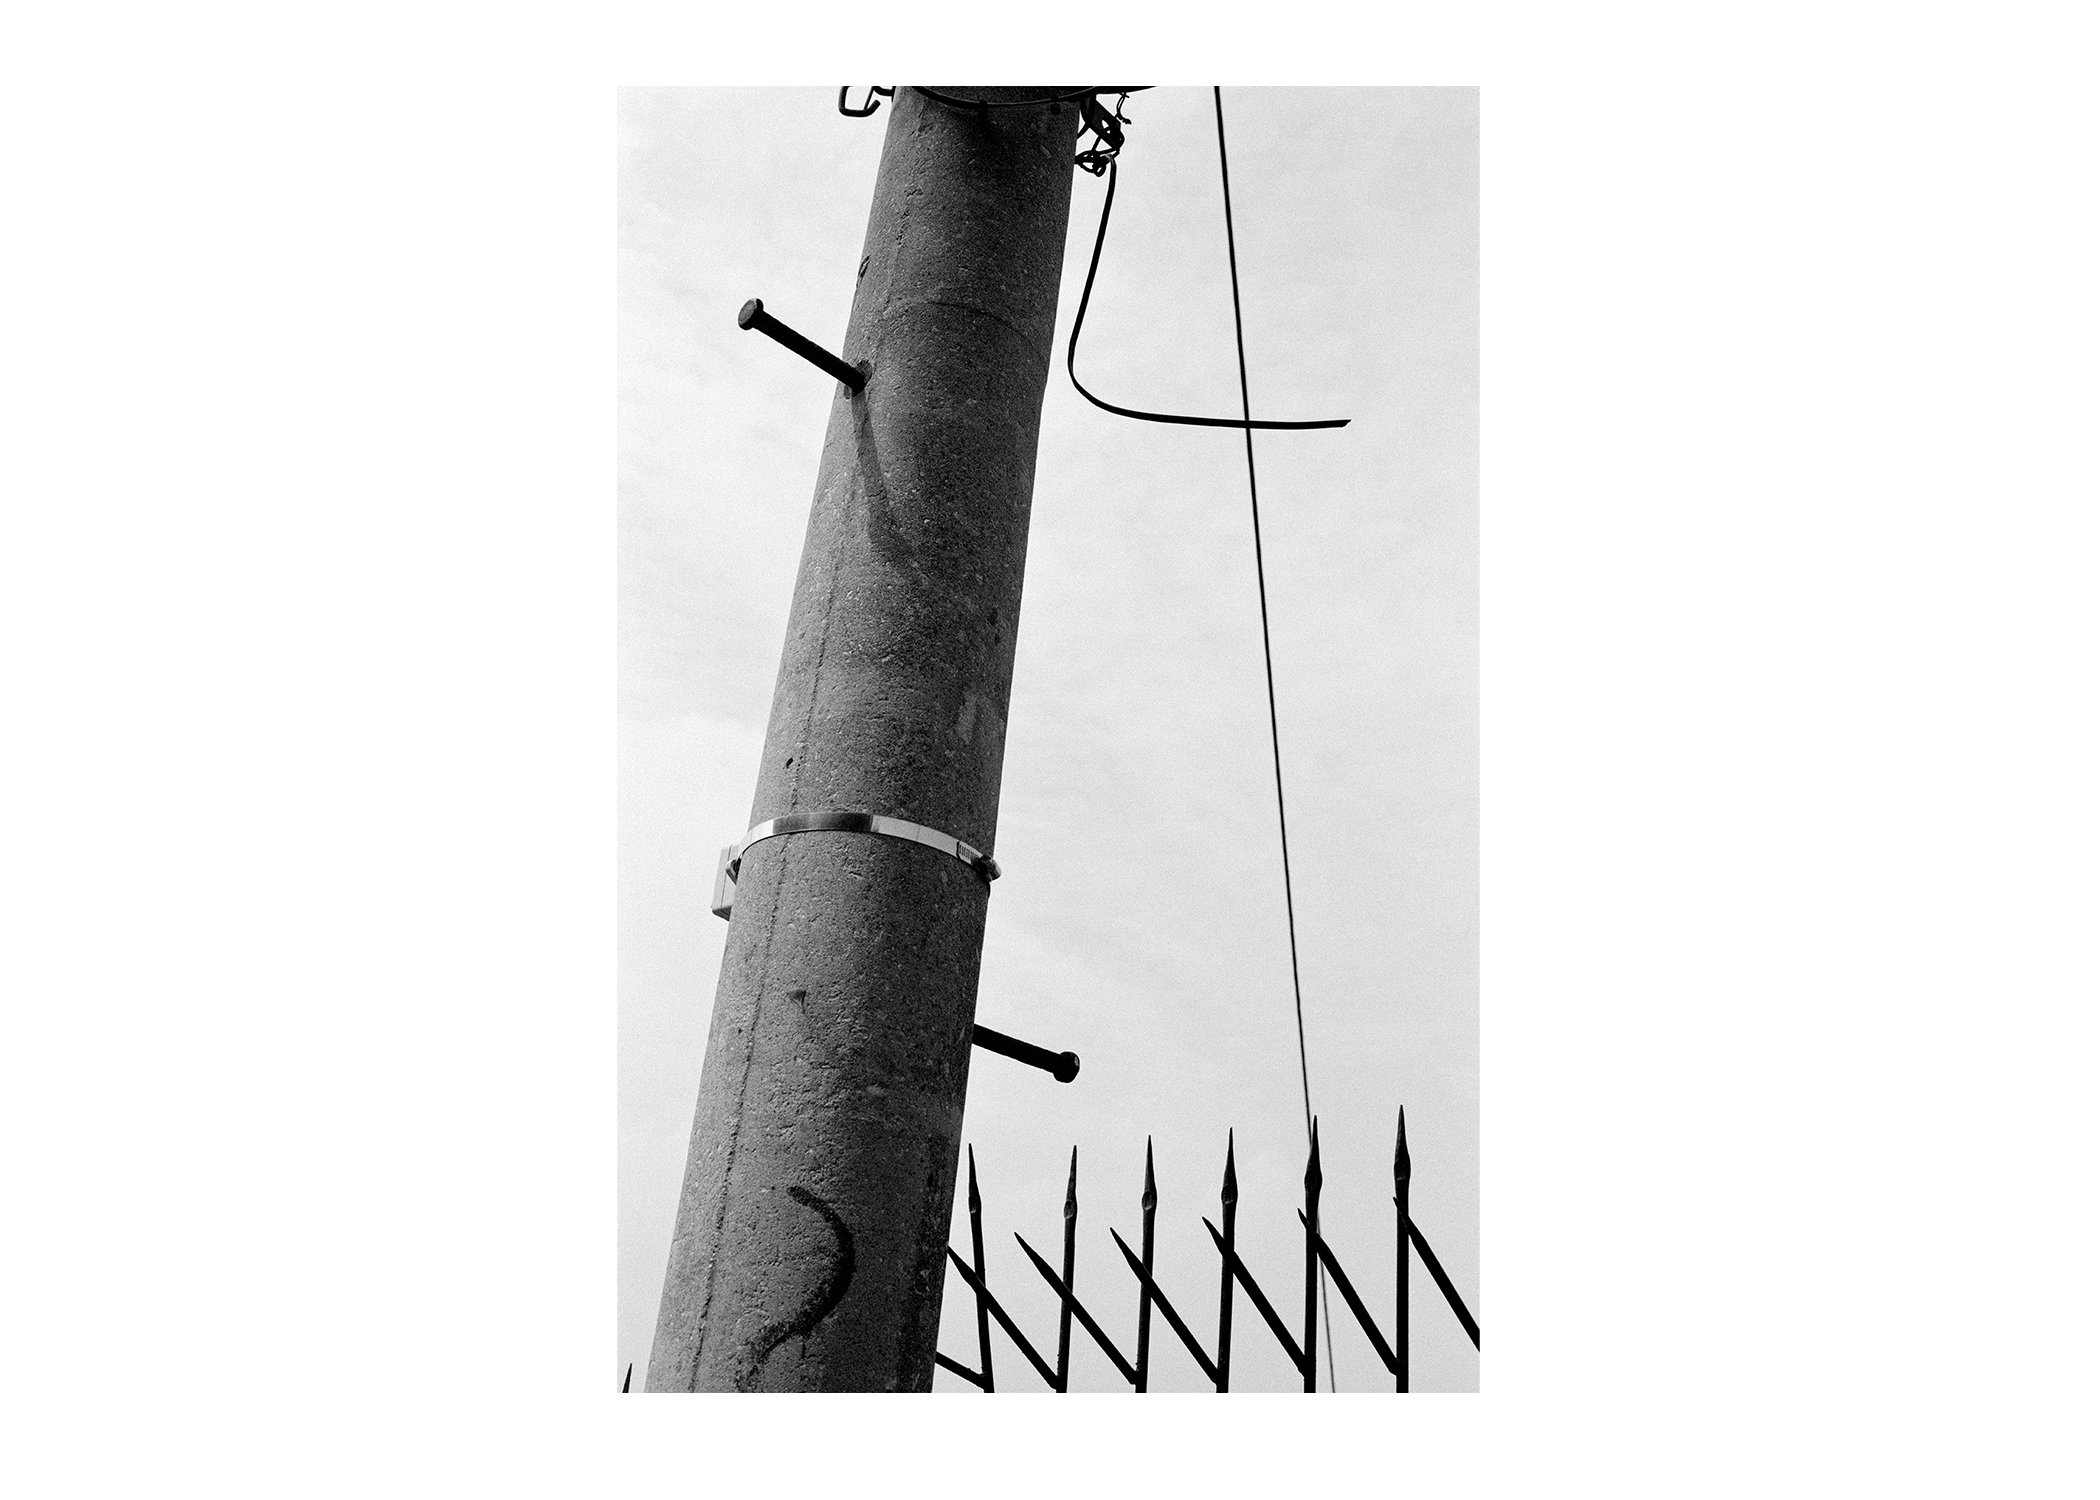 telegraph pole and spikes.jpg